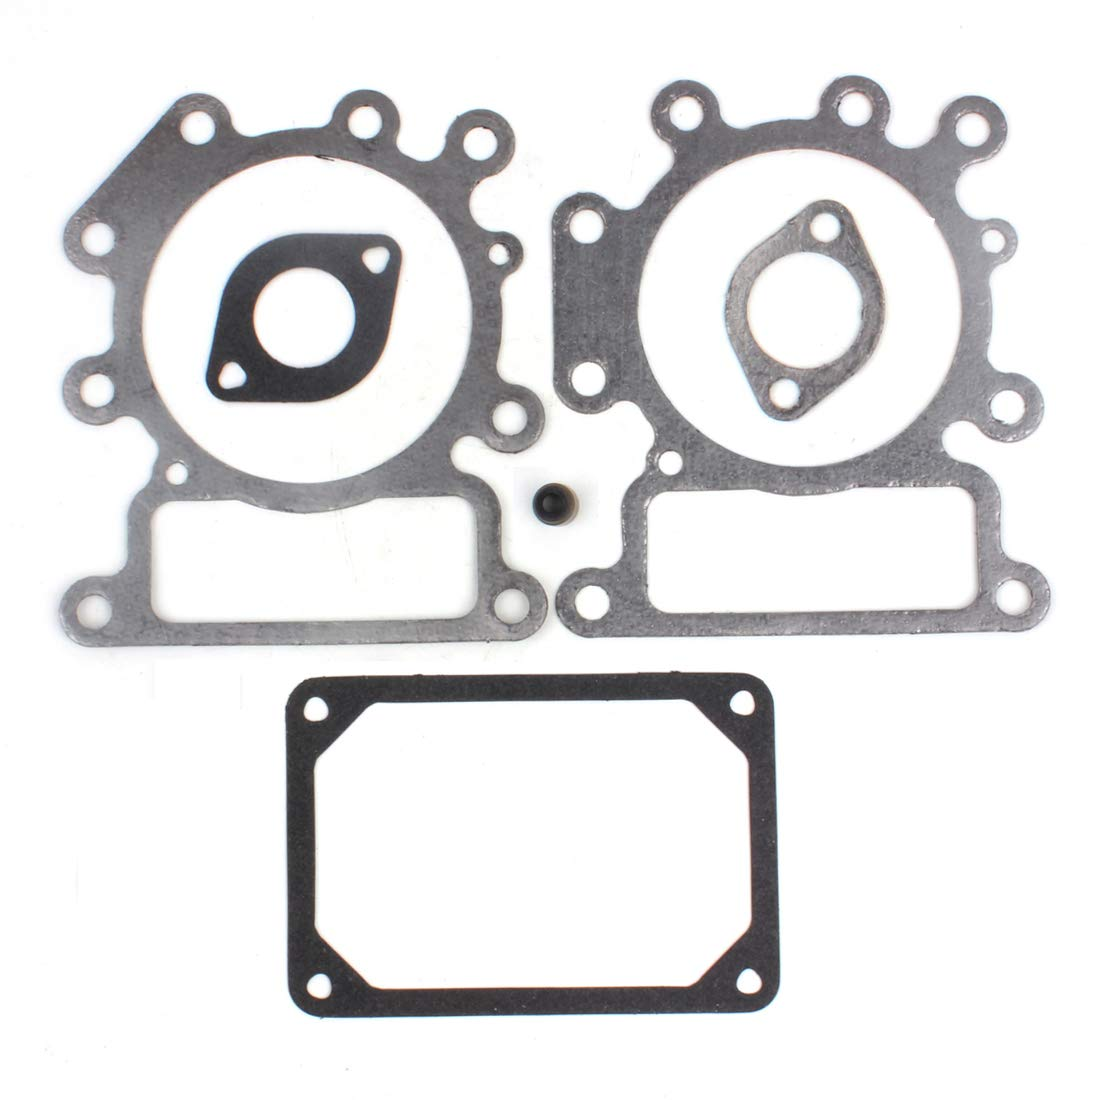 PRO CAKEN Valve Gasket Set for Briggs /& Stratton 690190 794152 31A807 31E877 31Q507 31R507 Vertical Engines